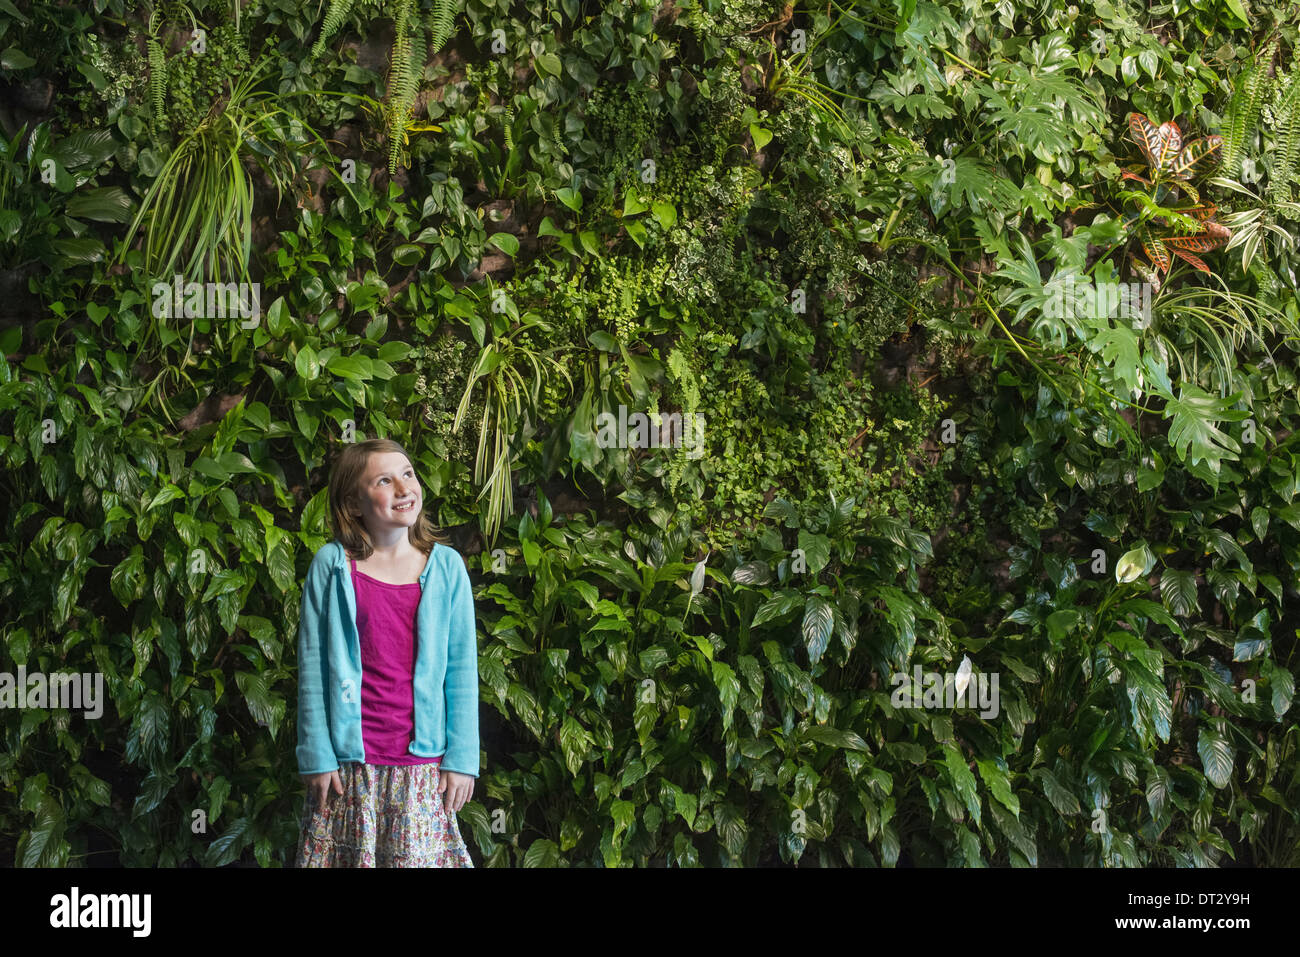 city in spring An urban lifestyle A young girl standing in front of a wall covered with ferns and climbing plants Stock Photo